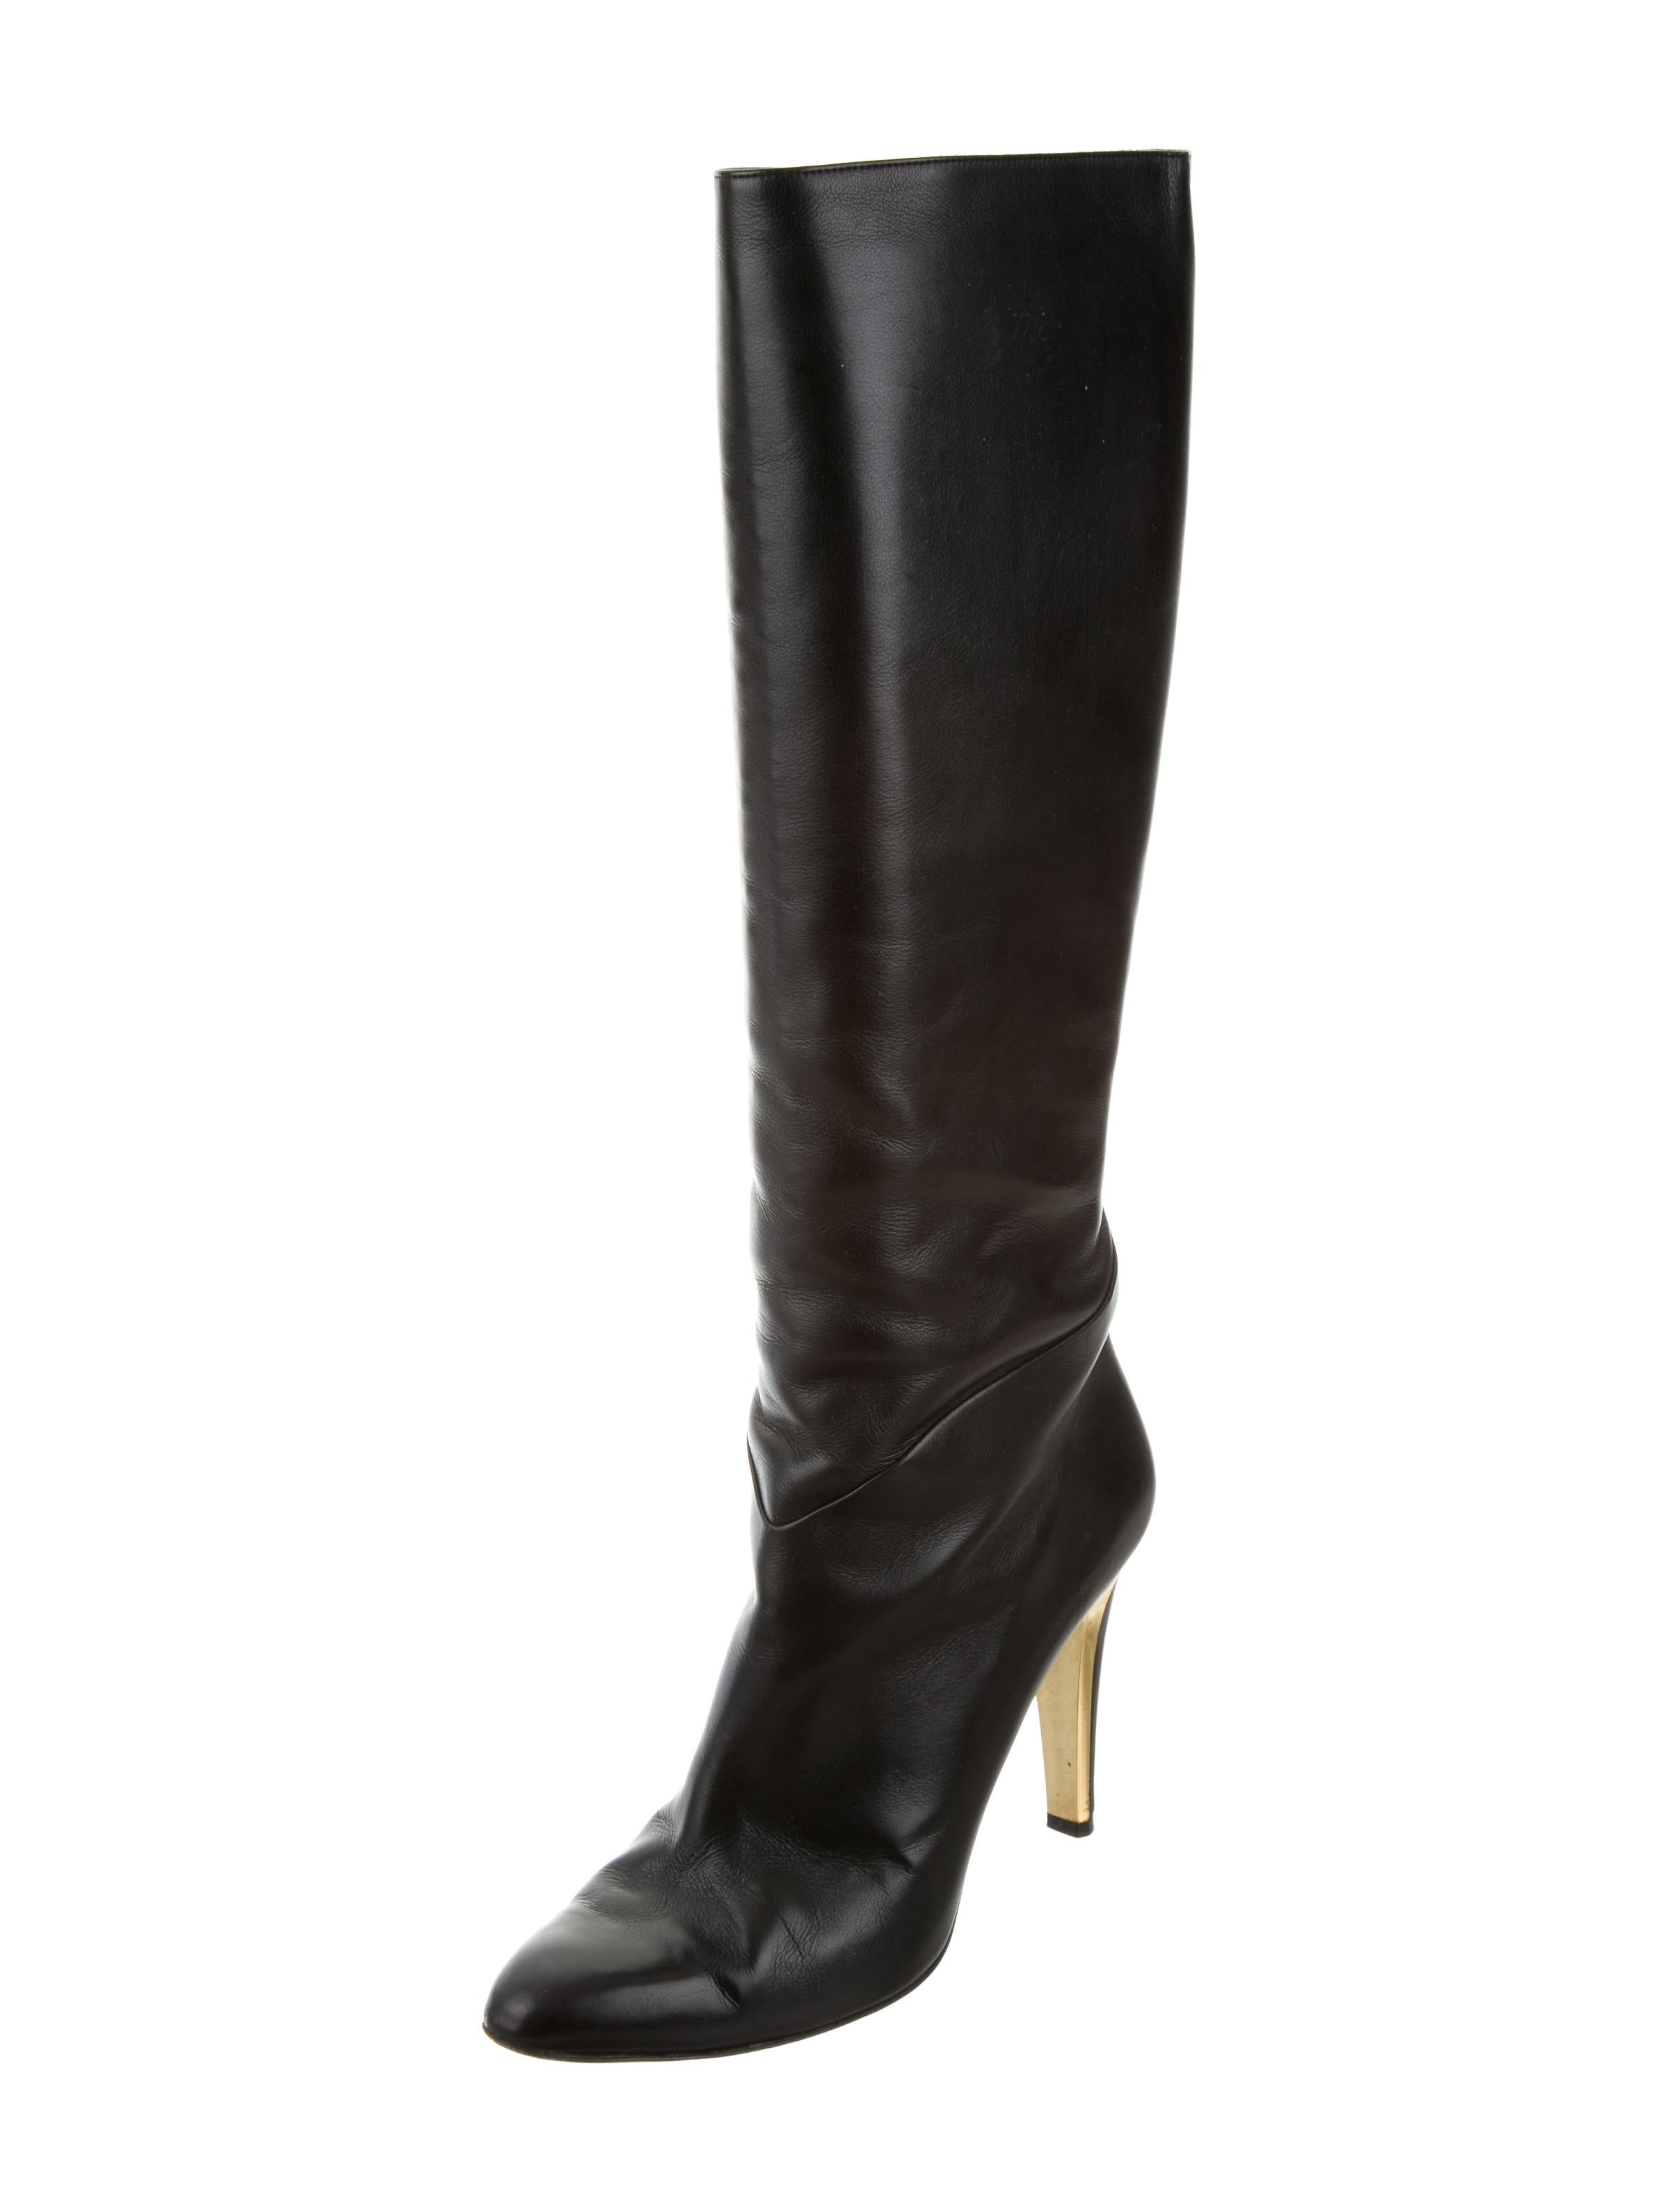 jimmy choo pointed toe knee high boots shoes jim61449